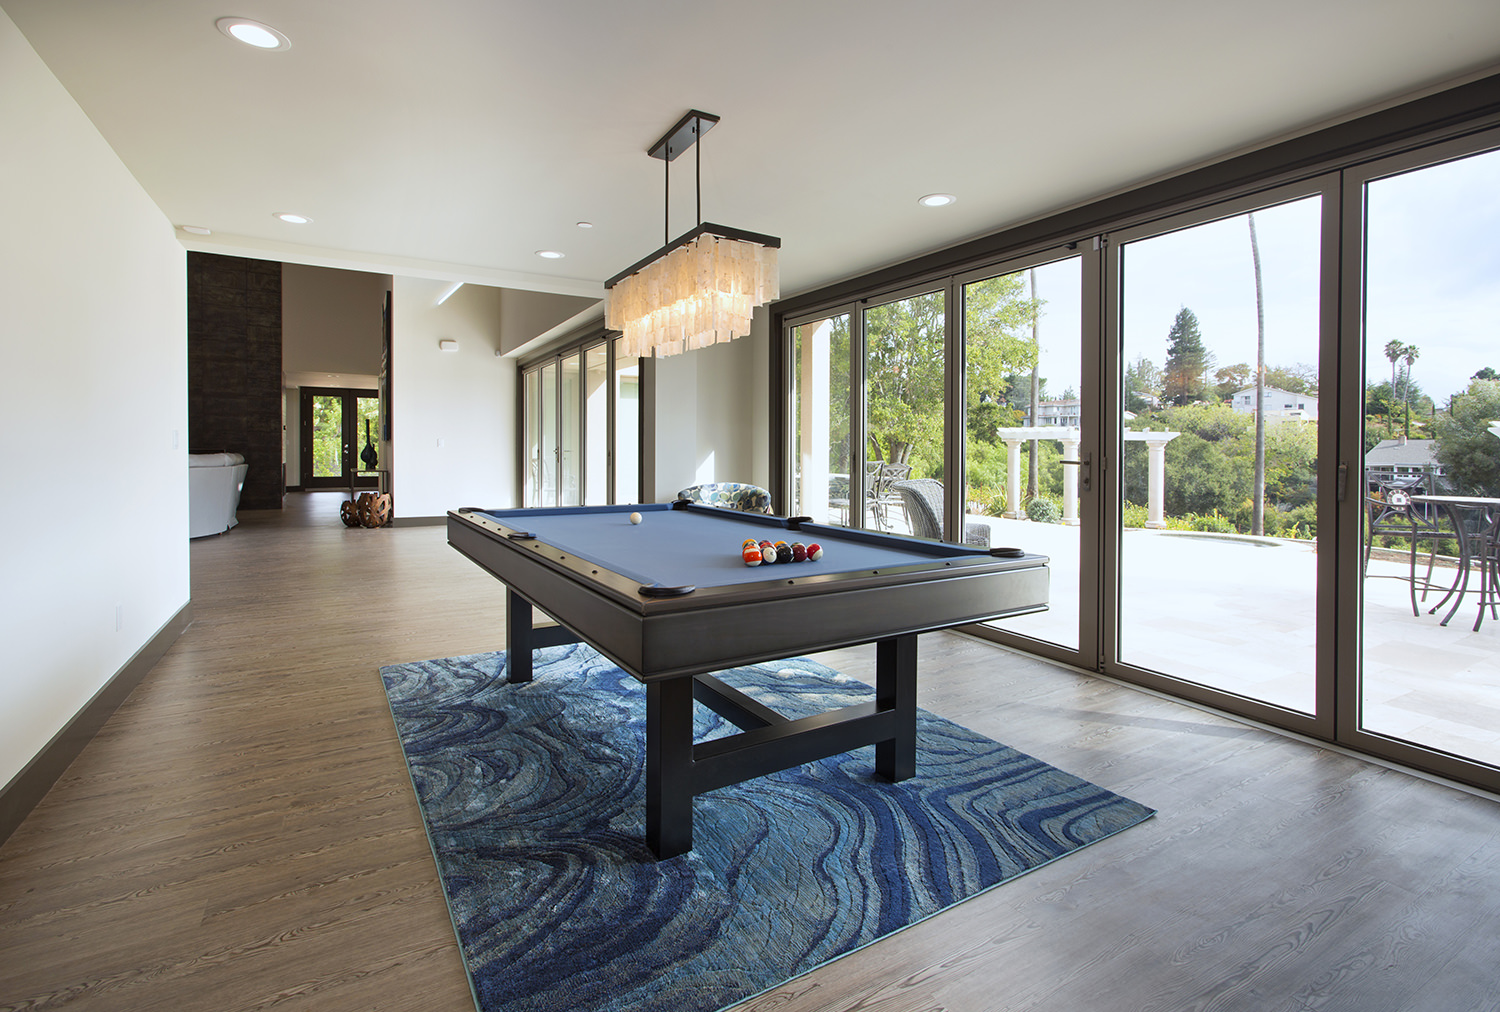 game-room-decor-interior-design-los-altos-california-ktj-design-co-1.jpg